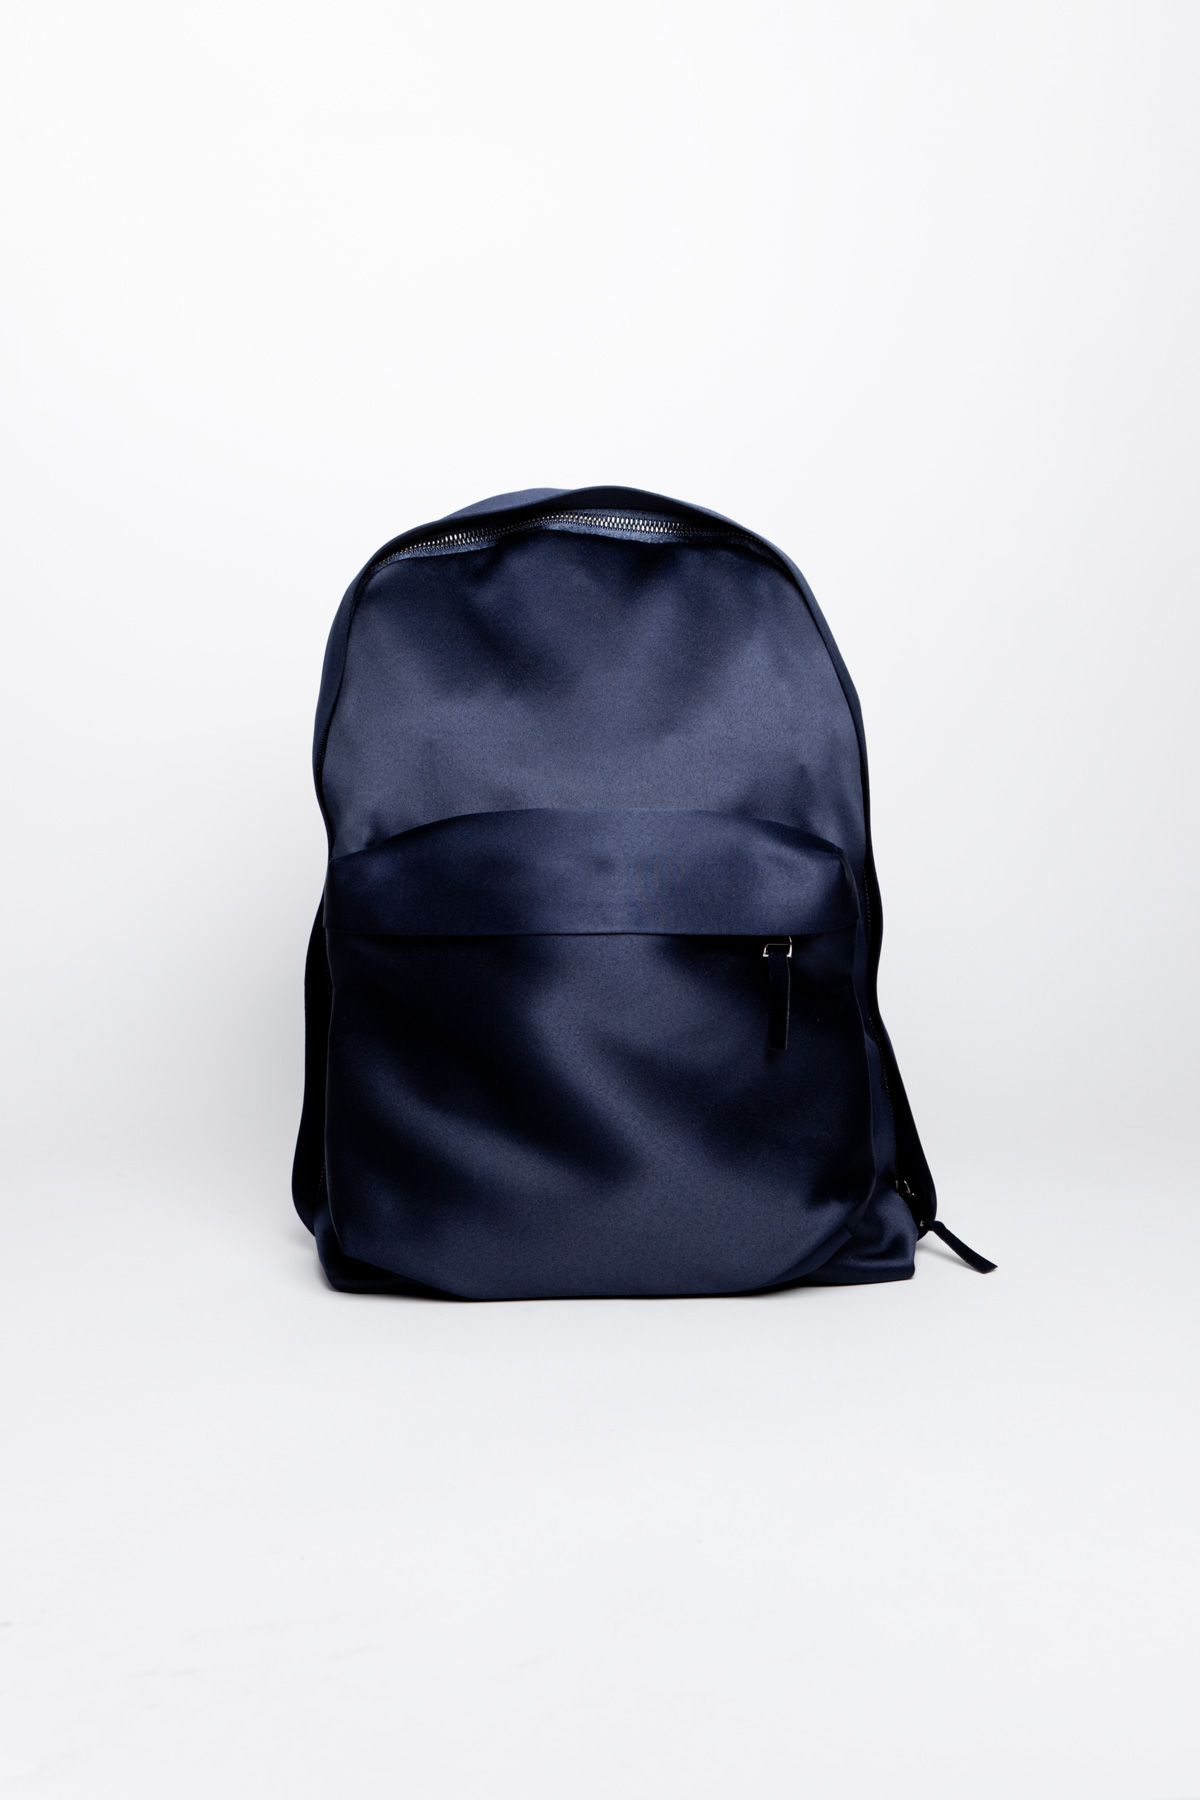 raf simons eastpak backpack menswear accessories pinterest